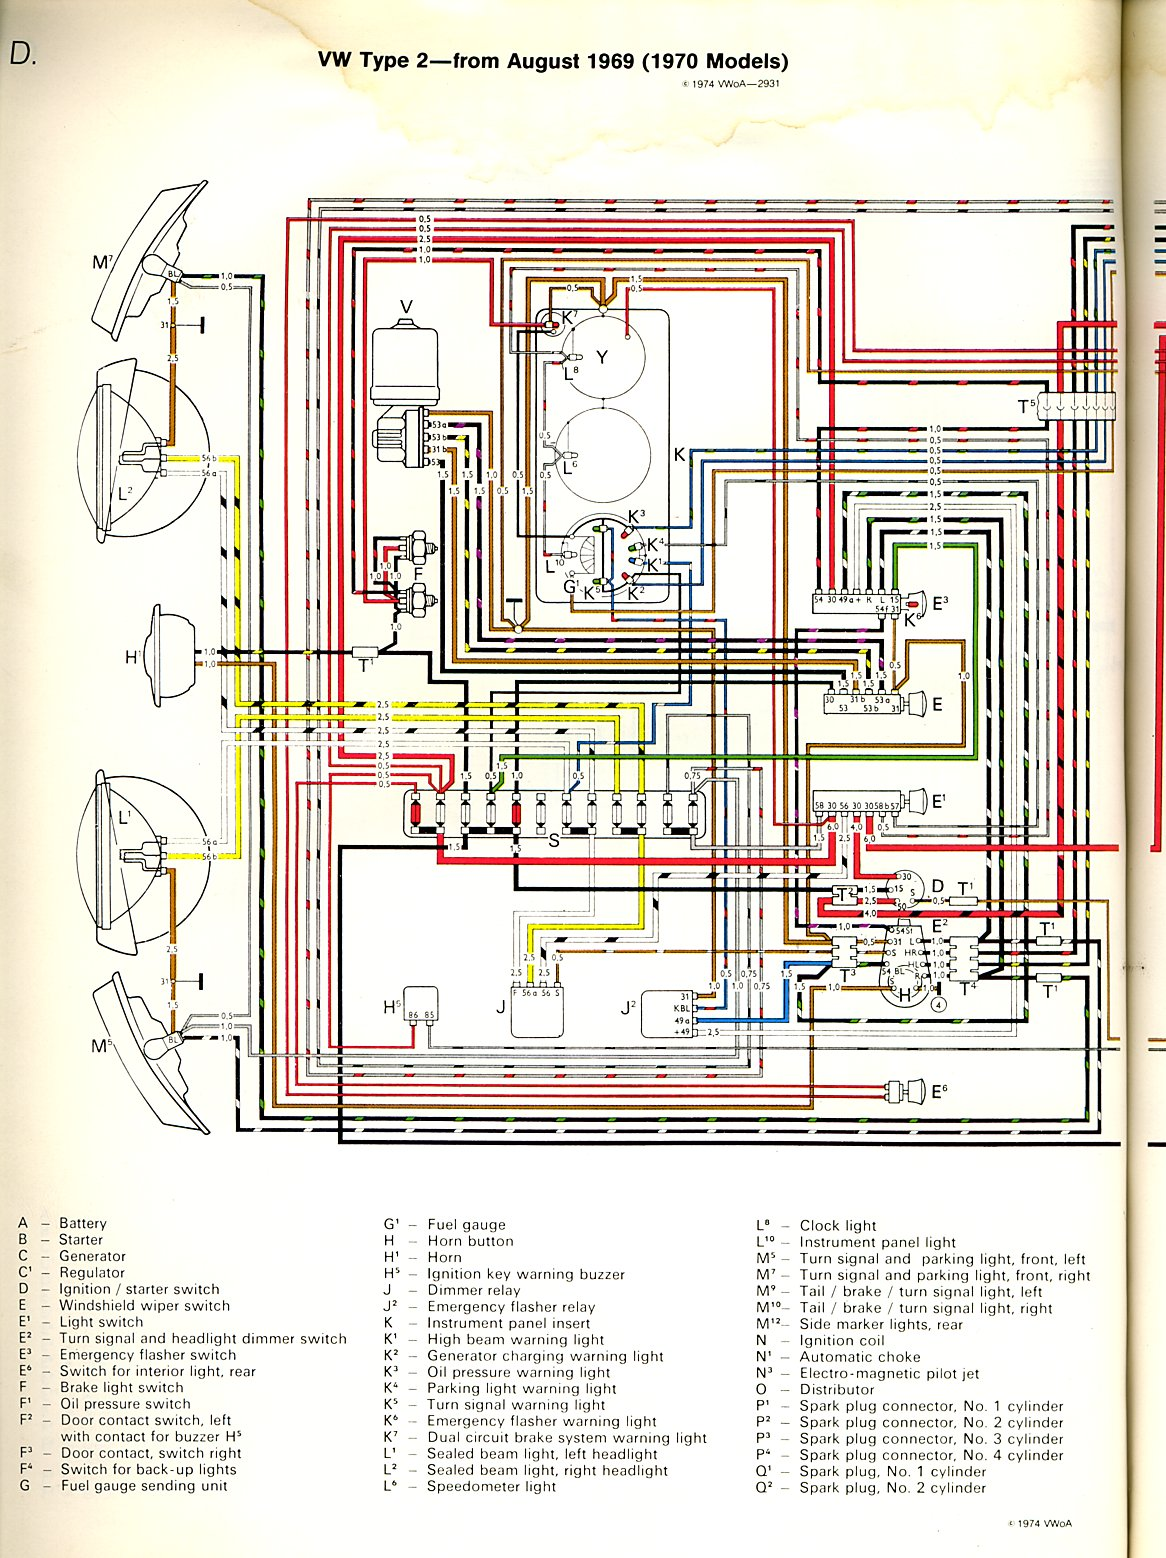 baybus_70a thesamba com type 2 wiring diagrams vw t4 fuse box wiring diagram at arjmand.co